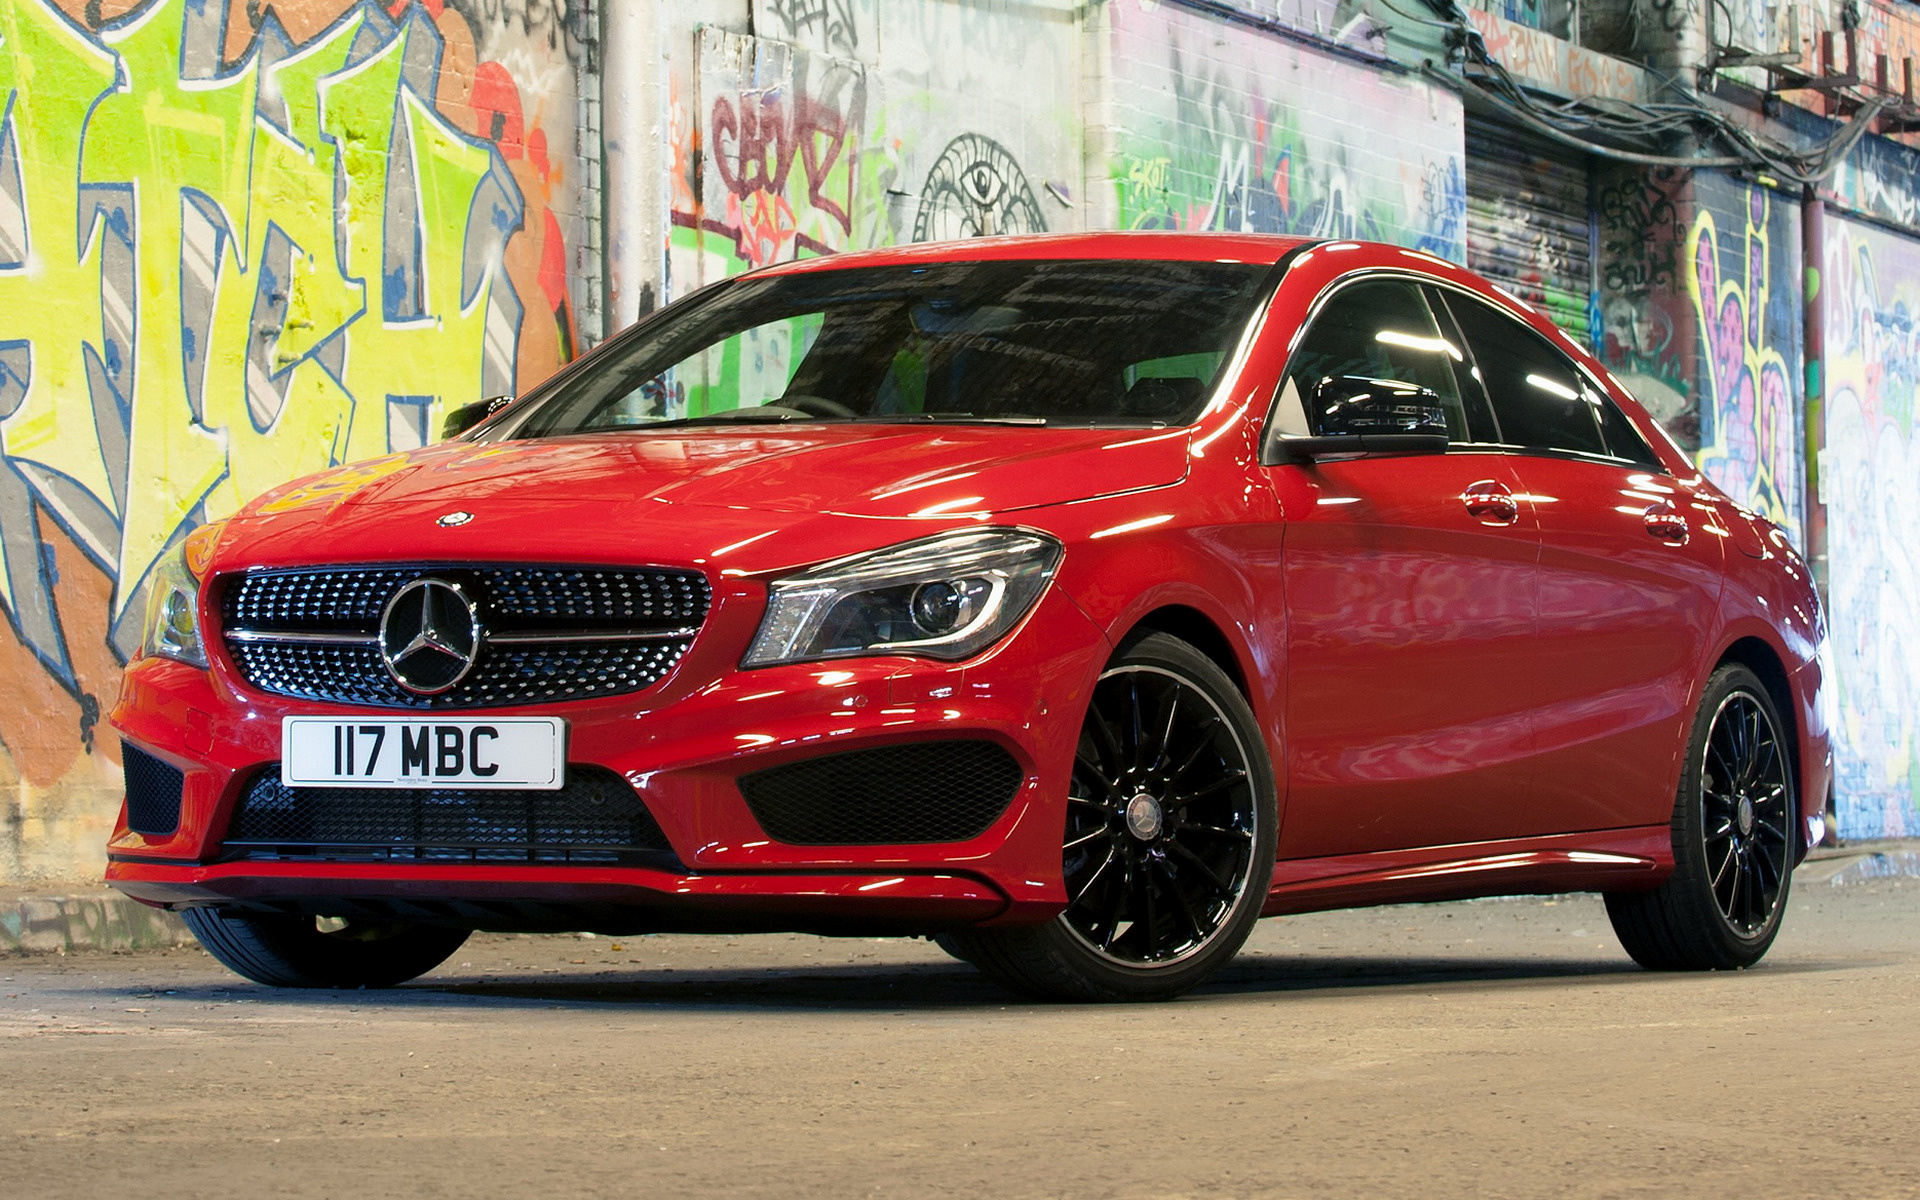 2013 Mercedes Benz CLA Class AMG Styling UK   Wallpapers and HD 1920x1200